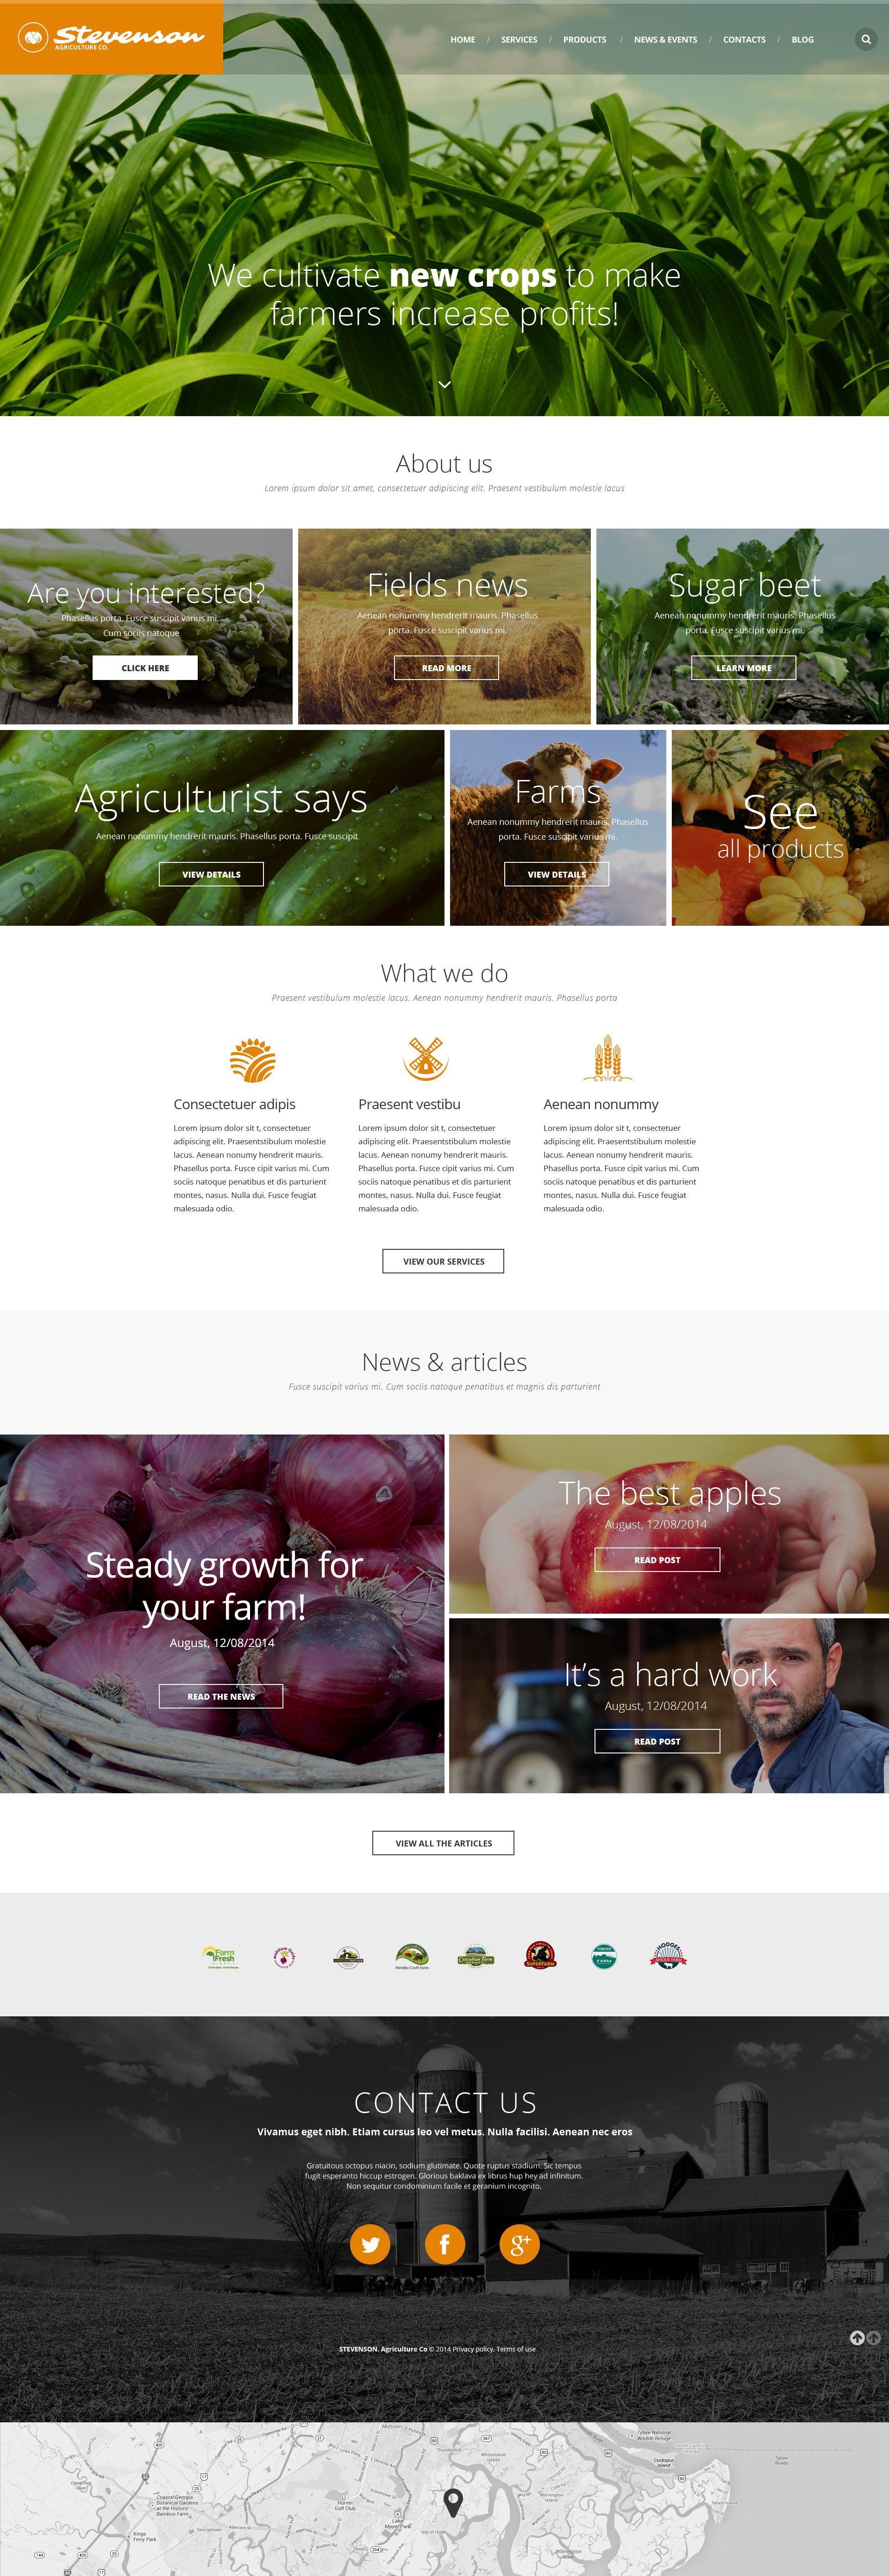 Agriculture Responsive Website Template - screenshot